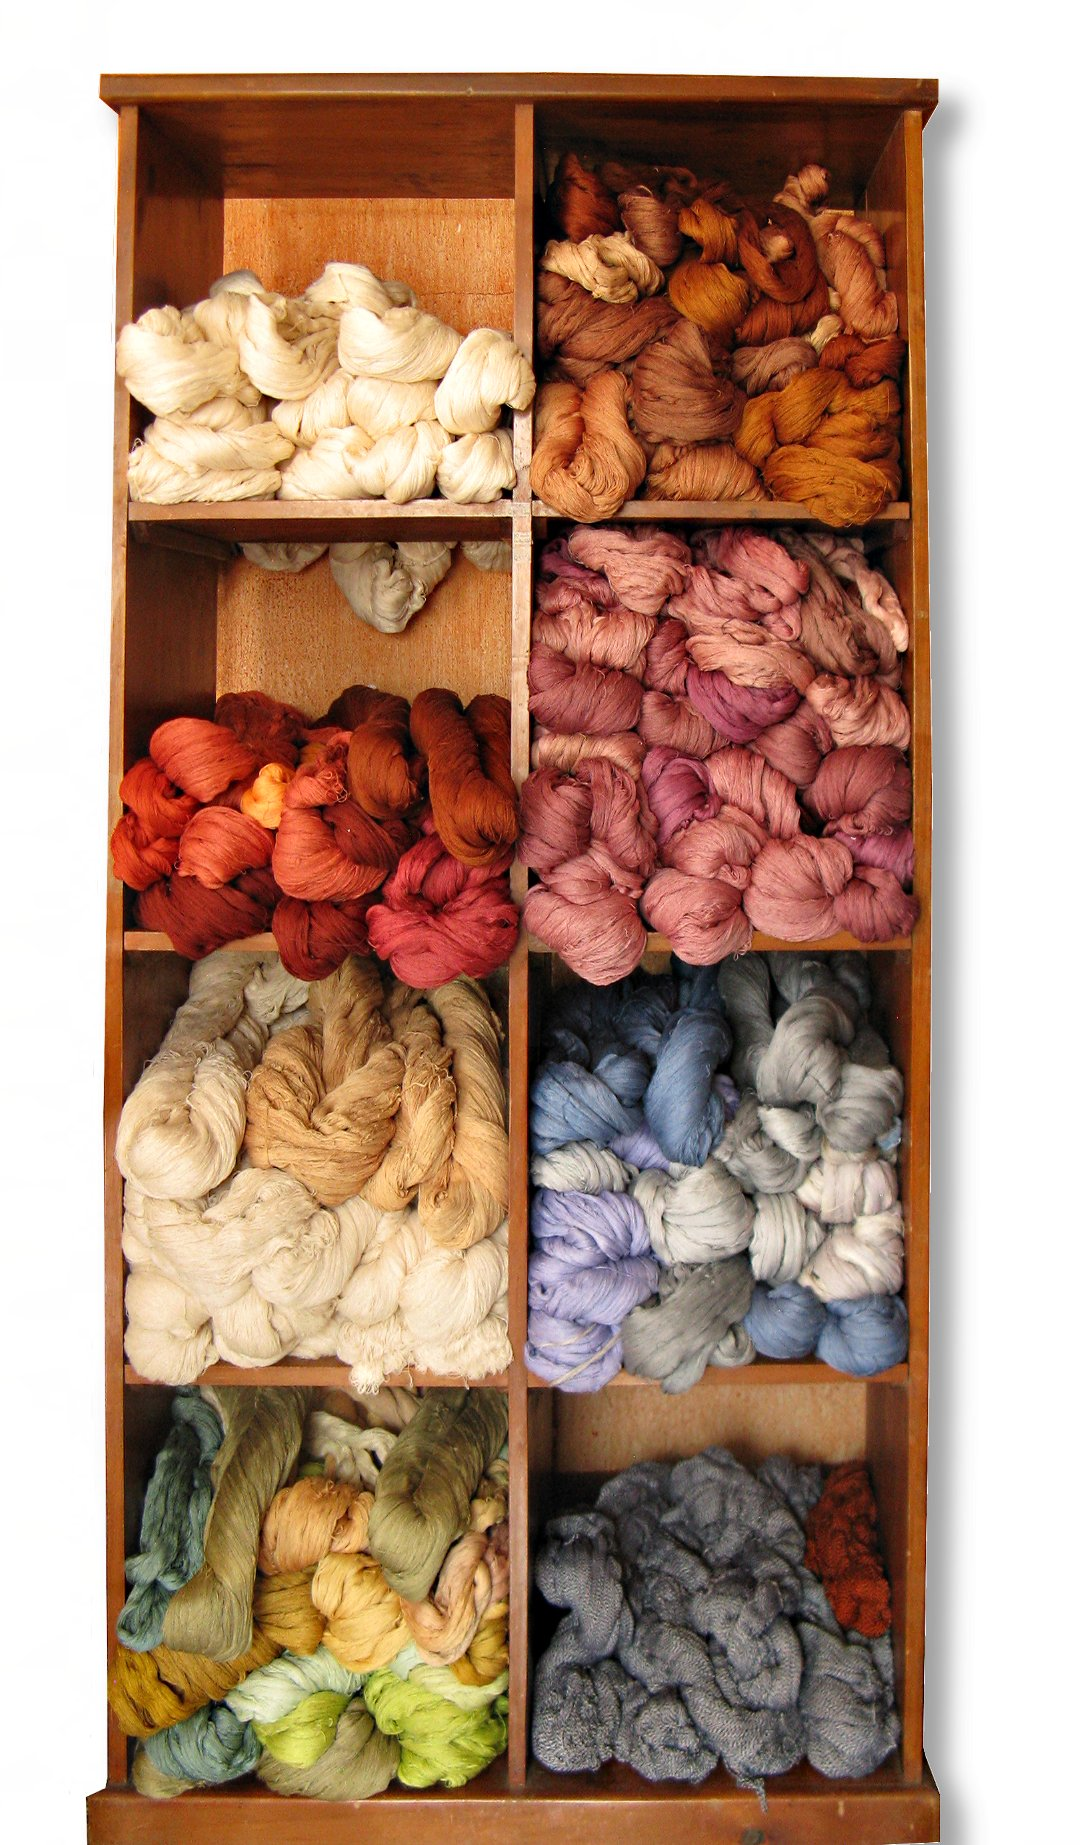 Display shelf bulging with all shades of naturally dyed cotton hanks ready for backstrap loom weaving